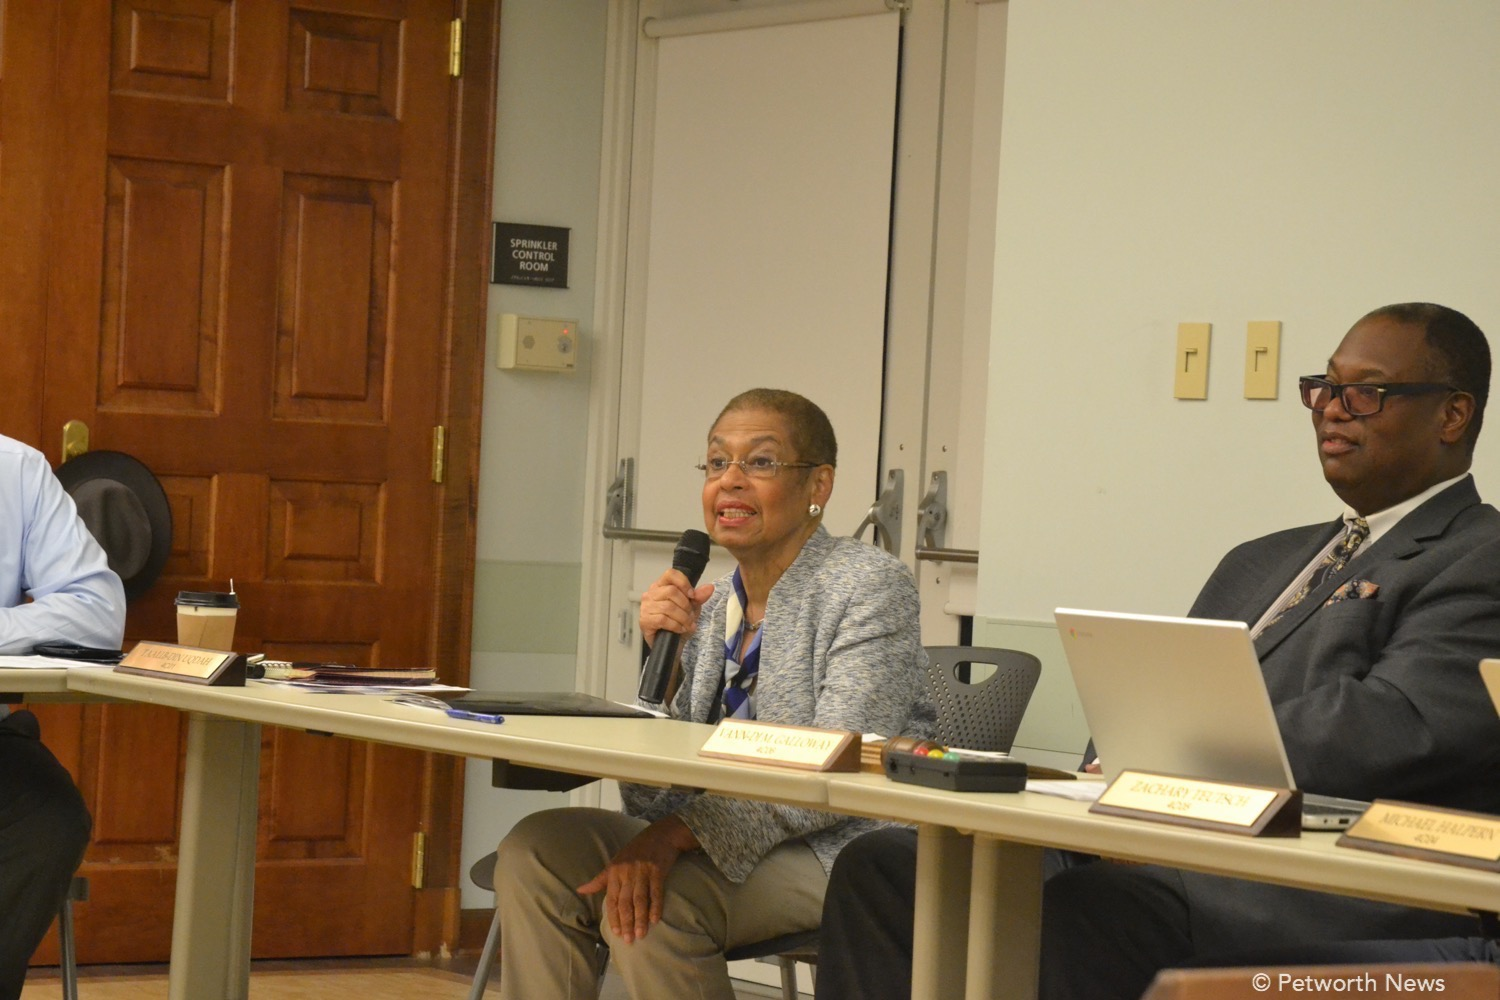 Delegate Eleanor Holmes Norton speaking at ANC 4C in October 2016